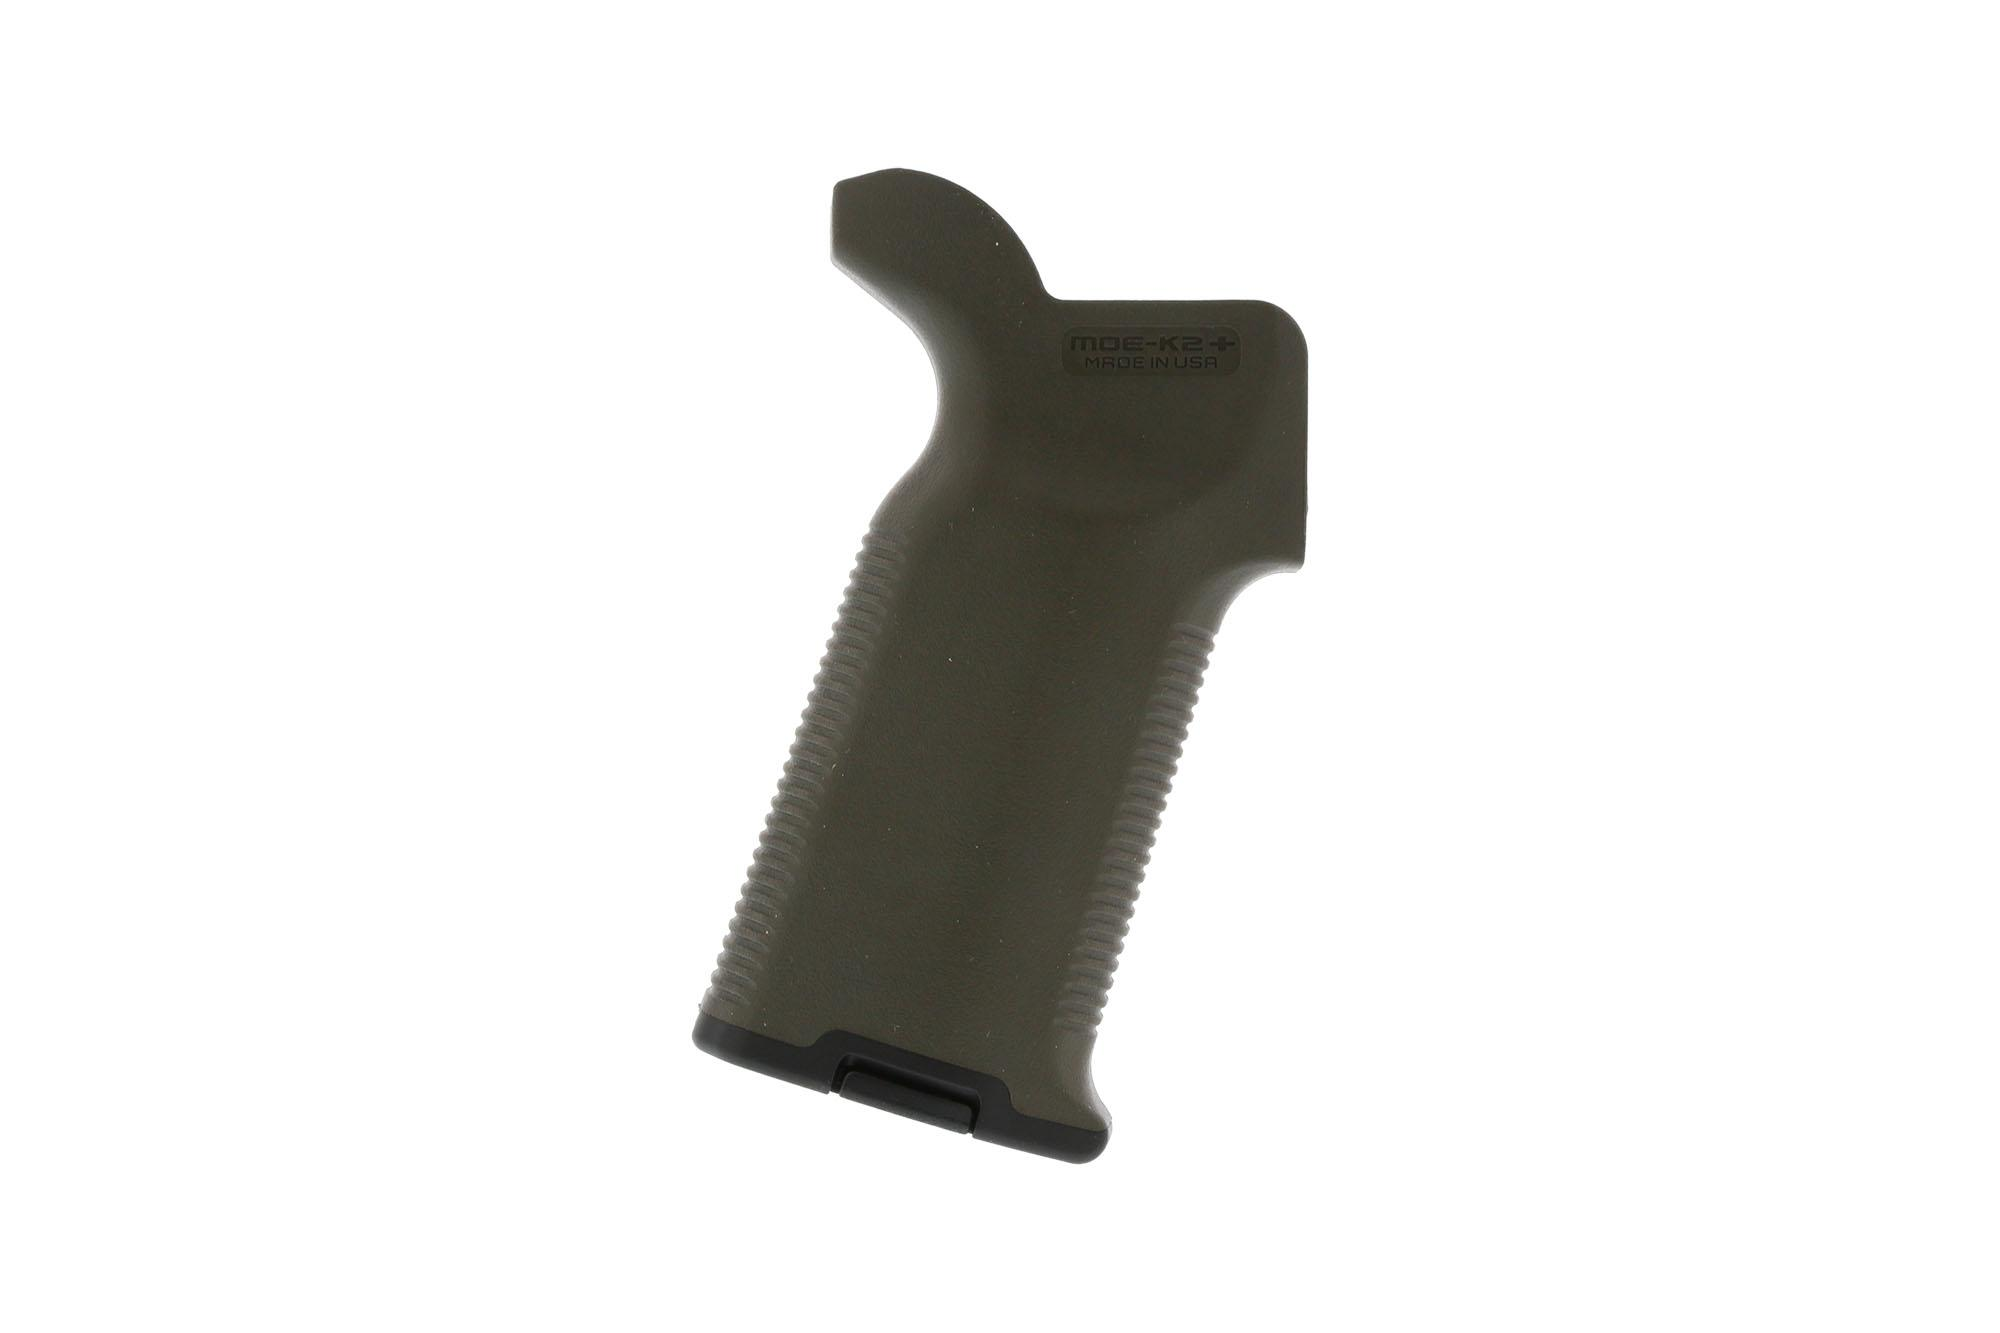 The Magpul MOE K2+ pistol grip Olive Drab Green features a high beavertail